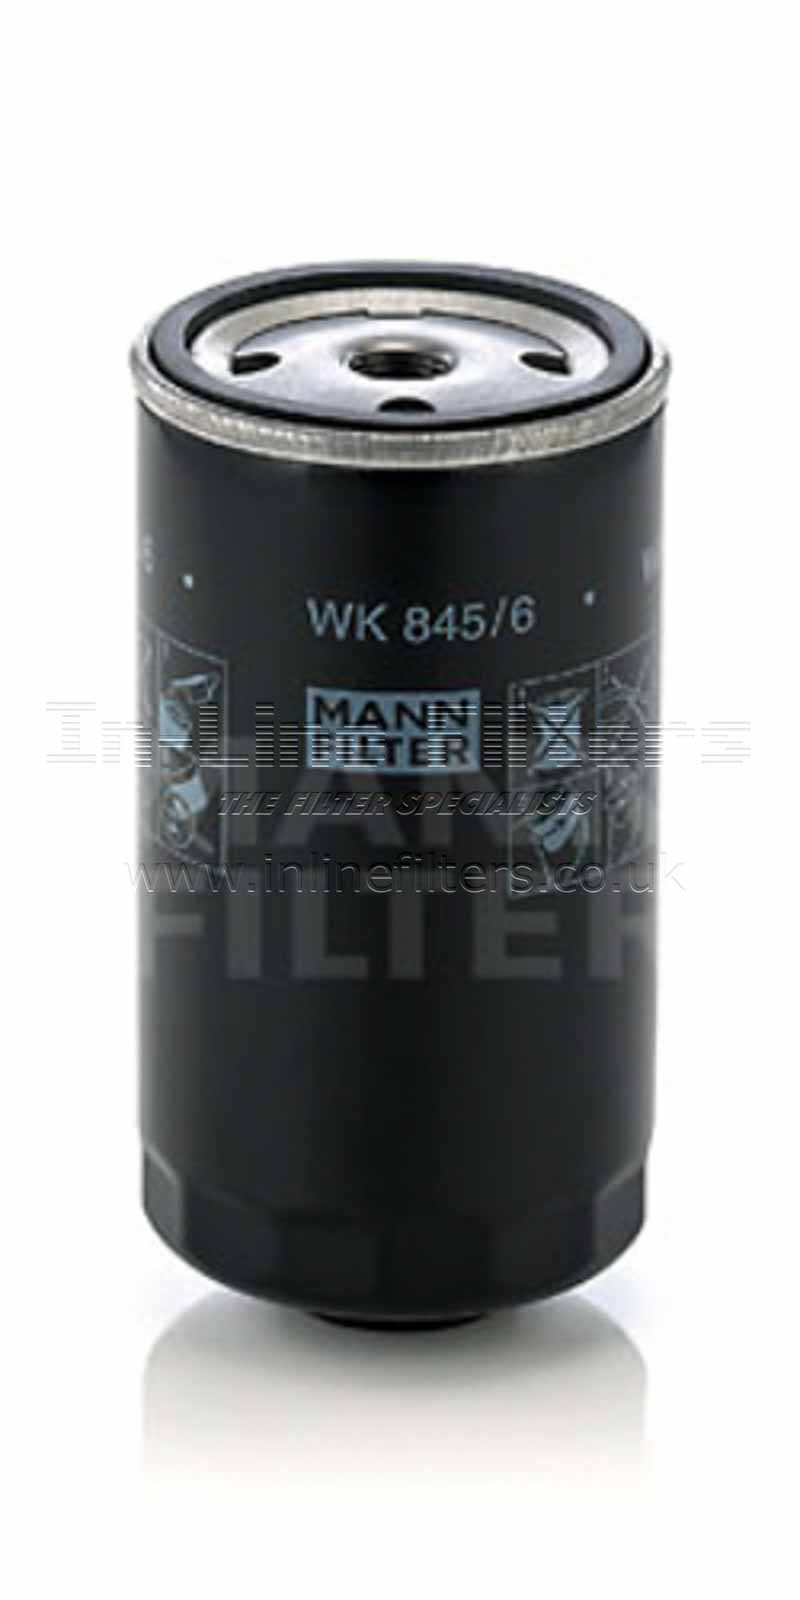 FMH-WK845-6 FILTER-Fuel(Brand Specific-Mann WK845/6) - Click Image to Close